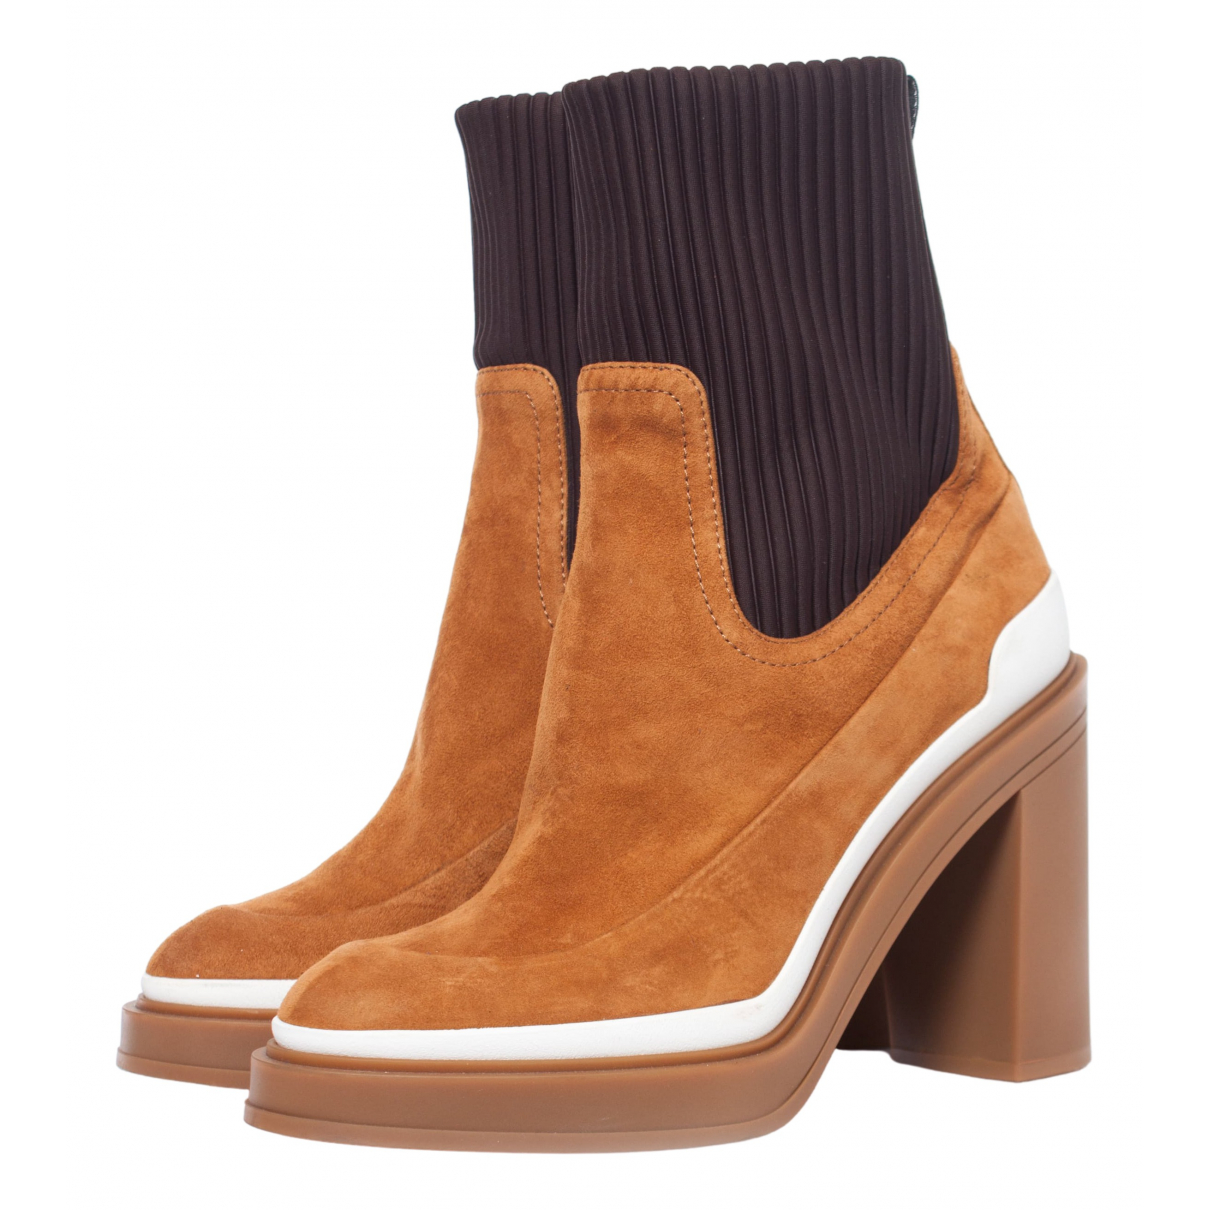 Hermès N Brown Suede Ankle boots for Women 39 EU